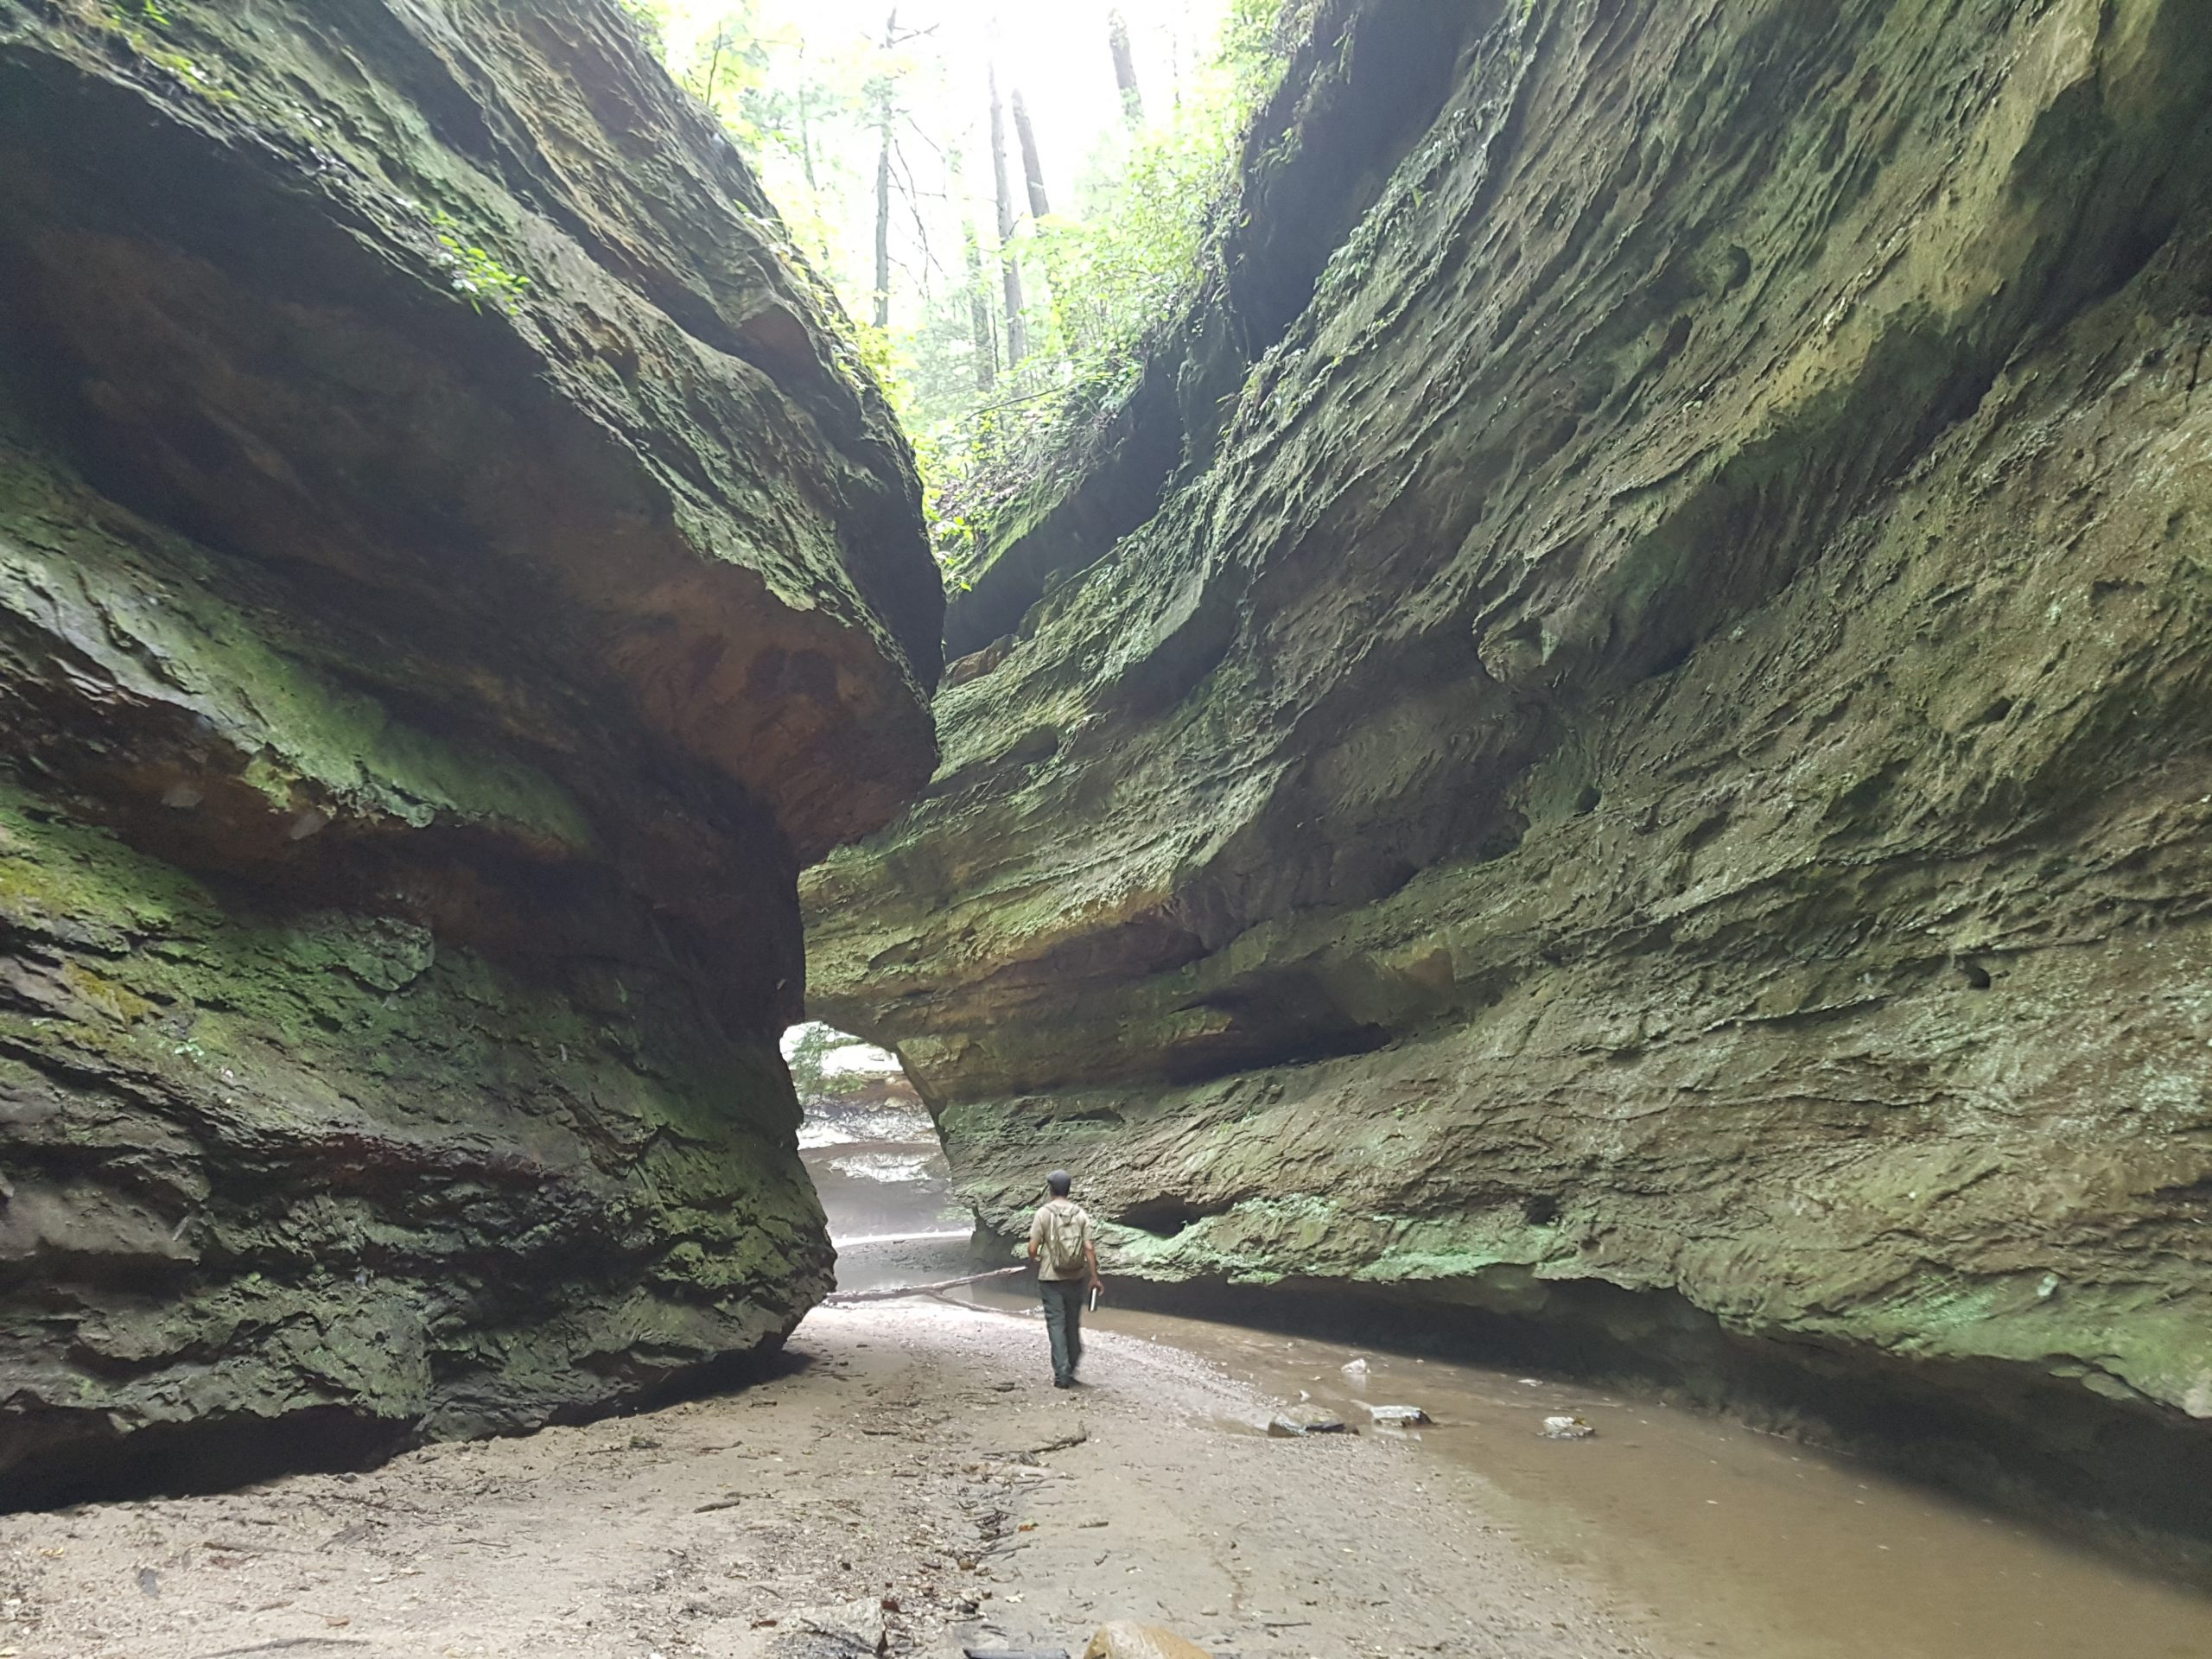 Canyon at Turkey Run State Park